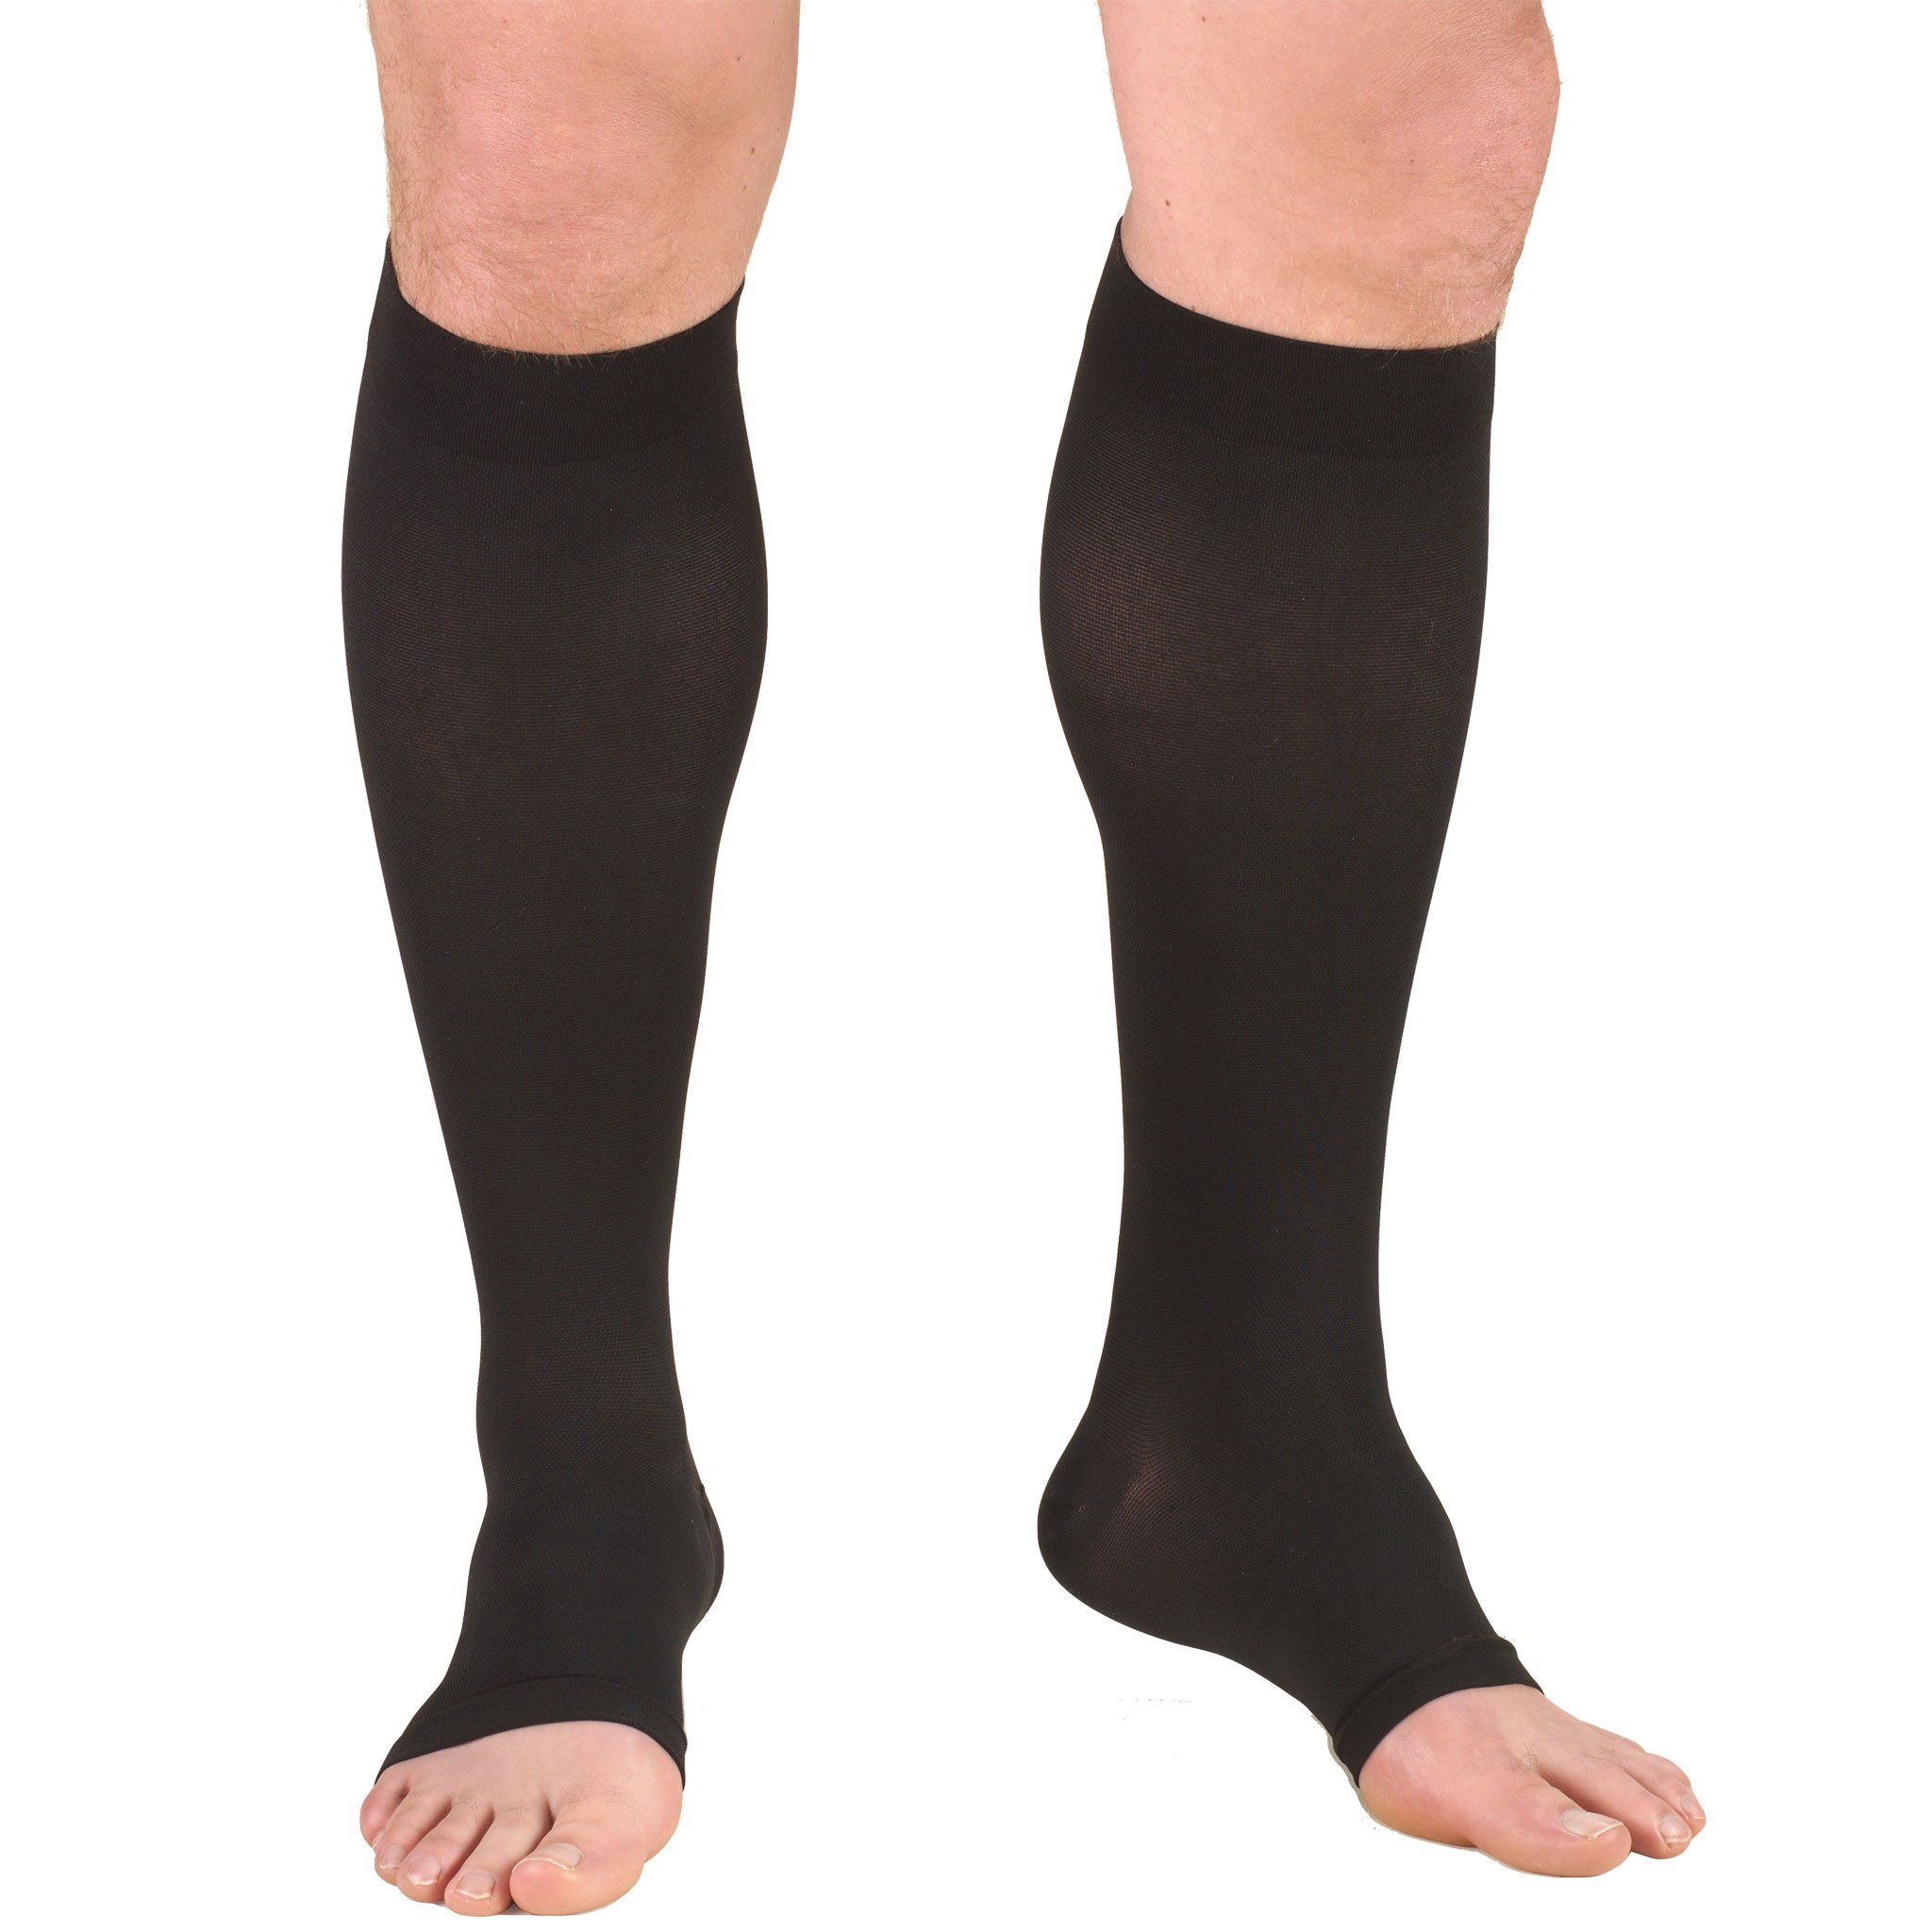 Truform Compression Stockings, 20-30 mmHg, Knee High, Open Toe, Black, Small